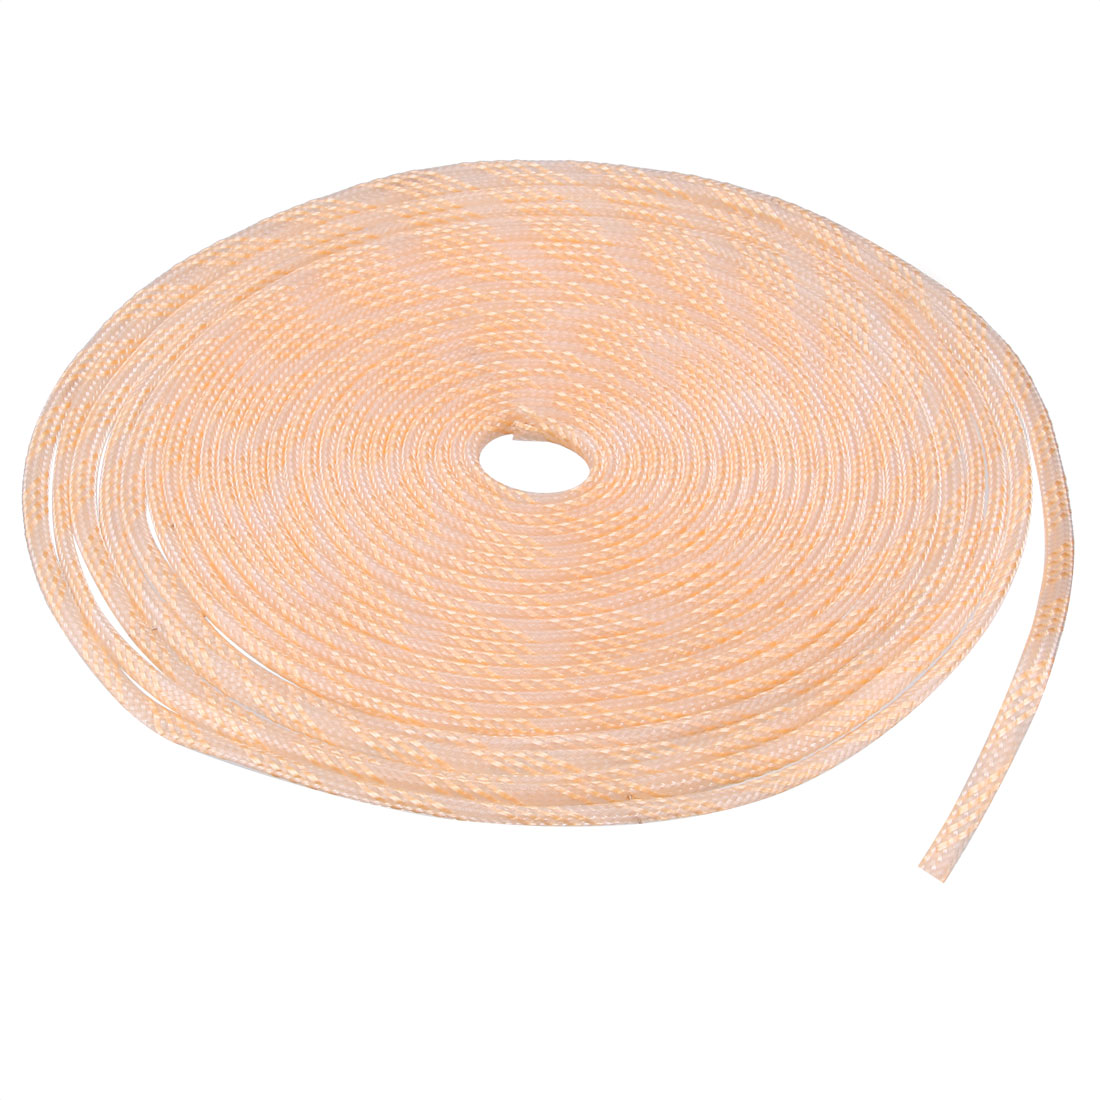 6mm Dia Tight Braided PET Expandable Sleeving Cable Wrap Sheath Transparent Orange 32Ft